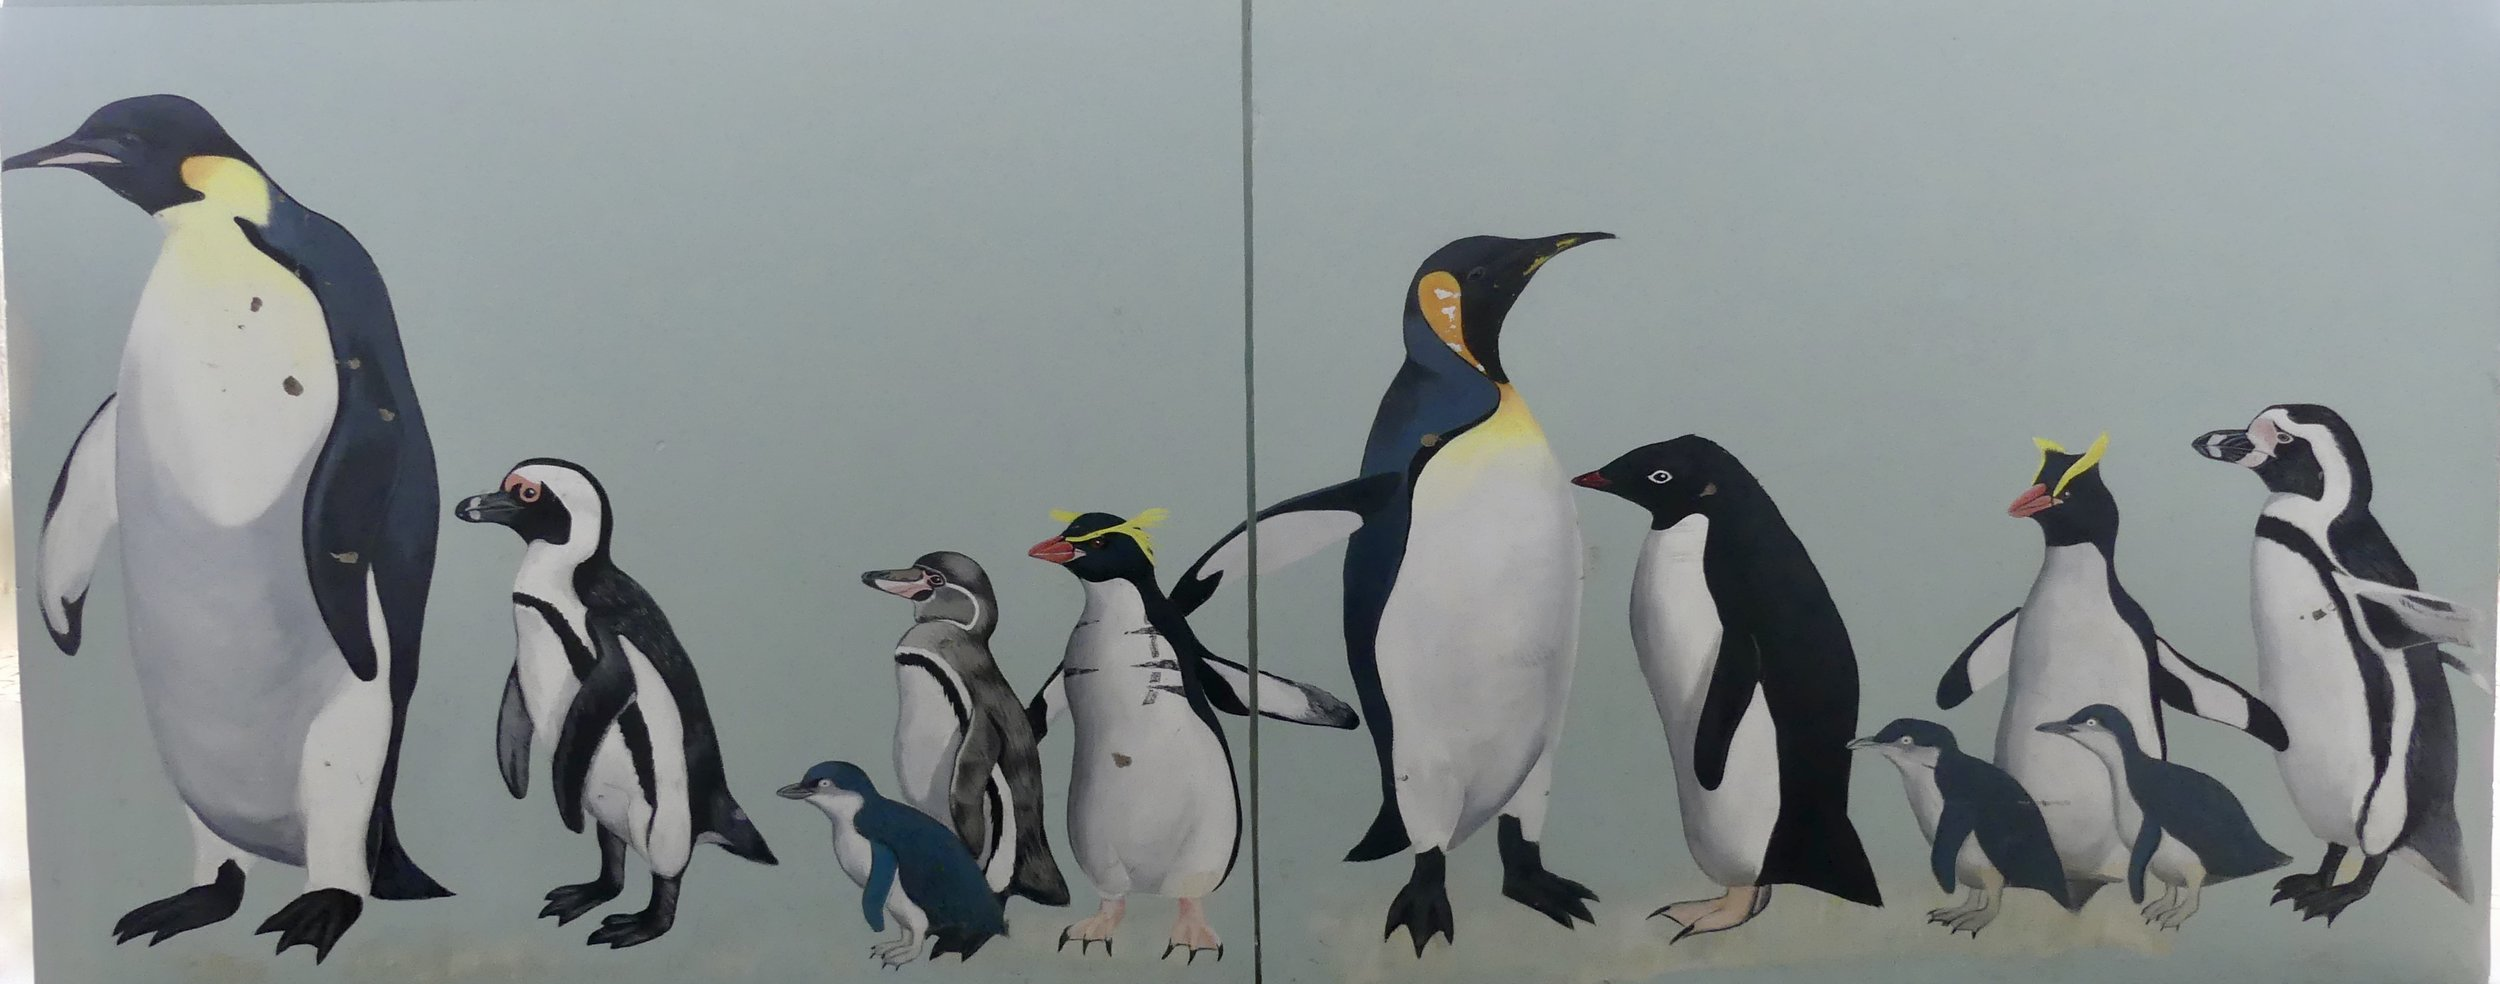 You won't be surprised to learn that Little Penguins are the smallest of the world's penguins